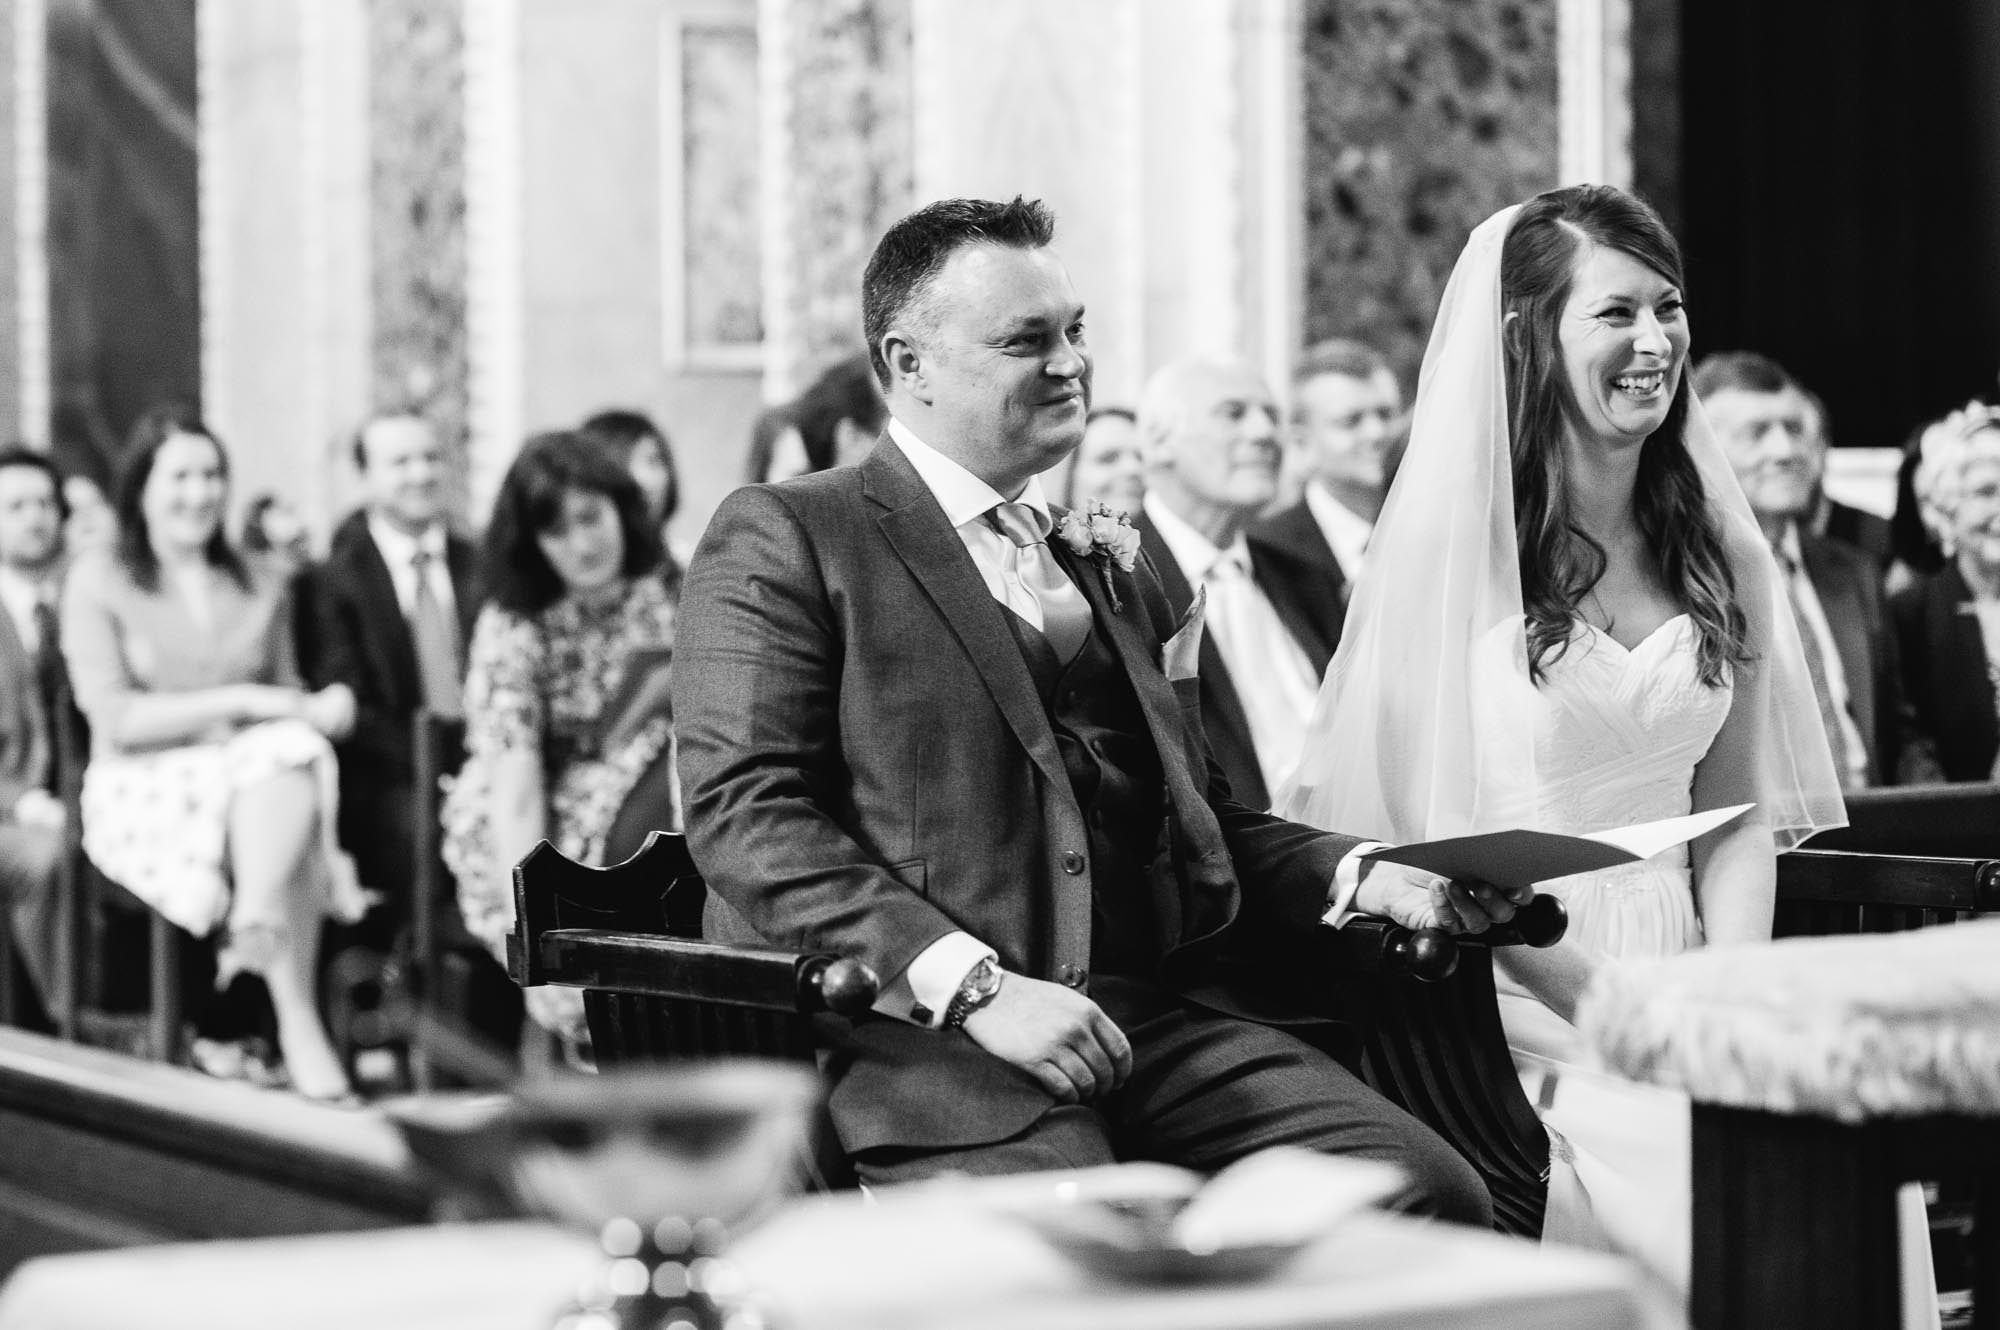 The Amadeus Wedding Photography - David and Lizzie 24